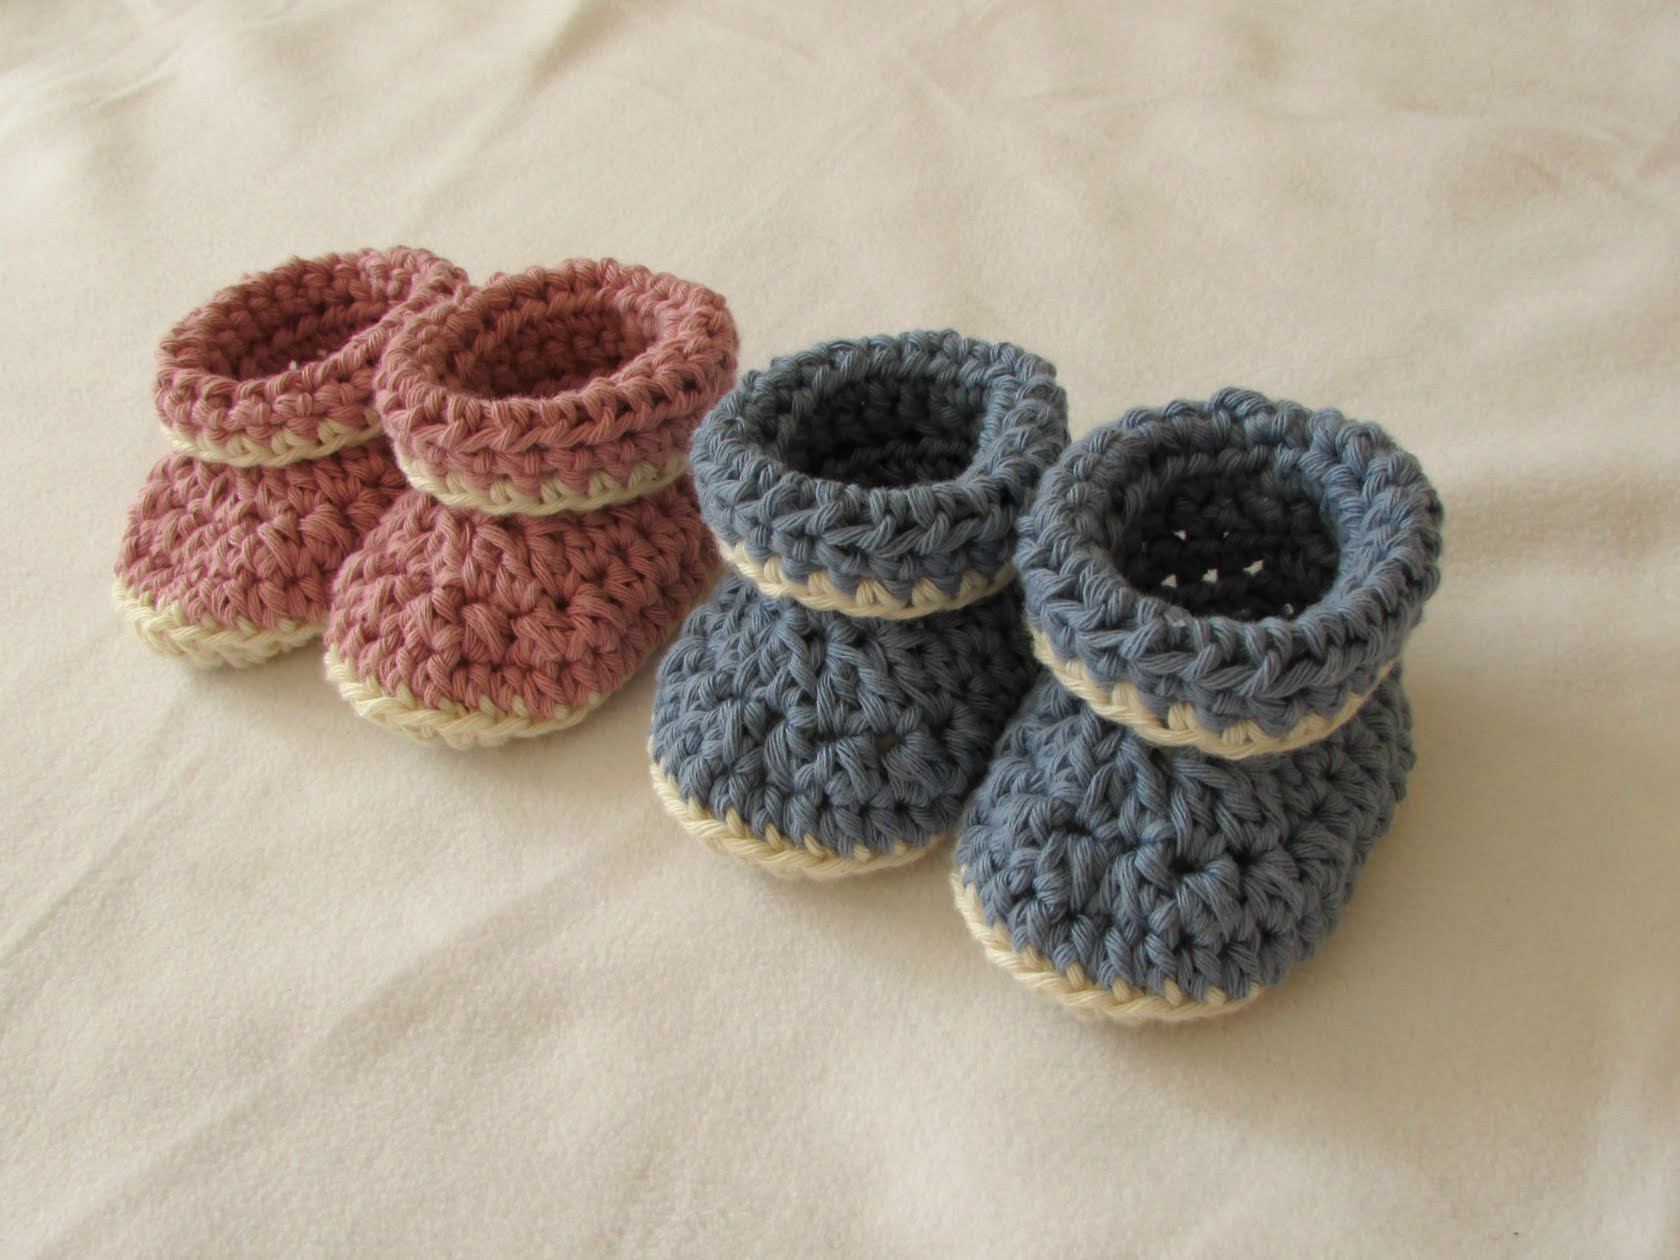 Luxury 36 Easy & Free Crochet Baby Booties Patterns for Your Angel Crochet Baby socks Of Beautiful Crochet Baby Booties Patterns for Sweet Little Feet Crochet Baby socks